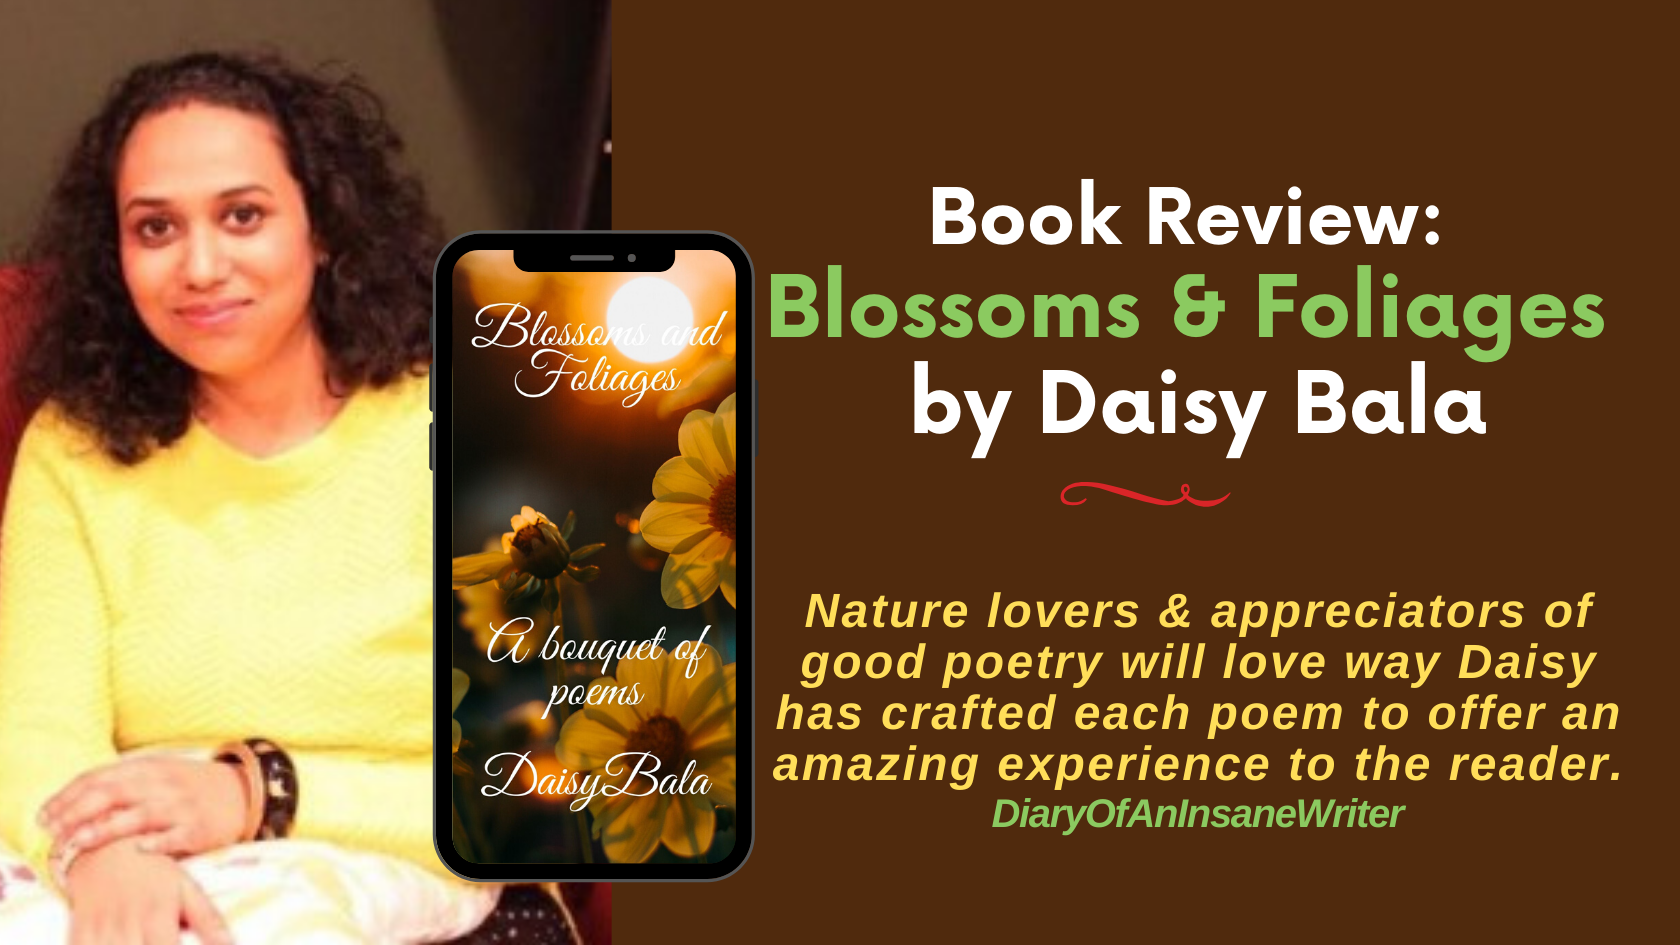 Daisy_Bala_bookReview_blossoms_and_foliages